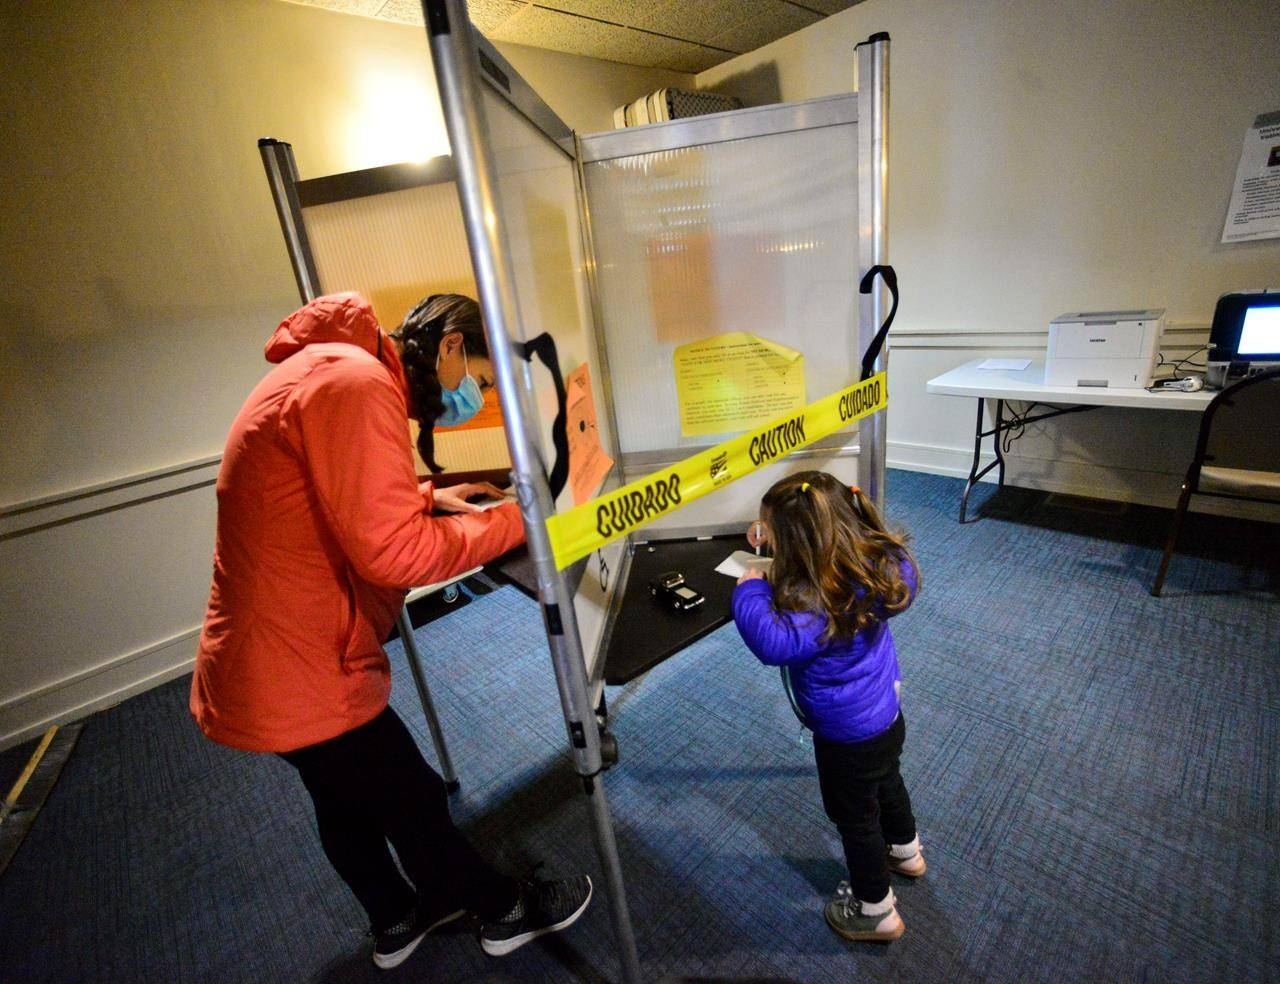 Tricia Suriani, of Brattleboro, Vt., fills out her ballot while her 2-year-old daughter, Clemencia, draws a picture inside a voting booth during Election Day, on Tuesday, Nov. 3, 2020 in Brattleboro, Vt. (Kristopher Radder /The Brattleboro Reformer via AP)